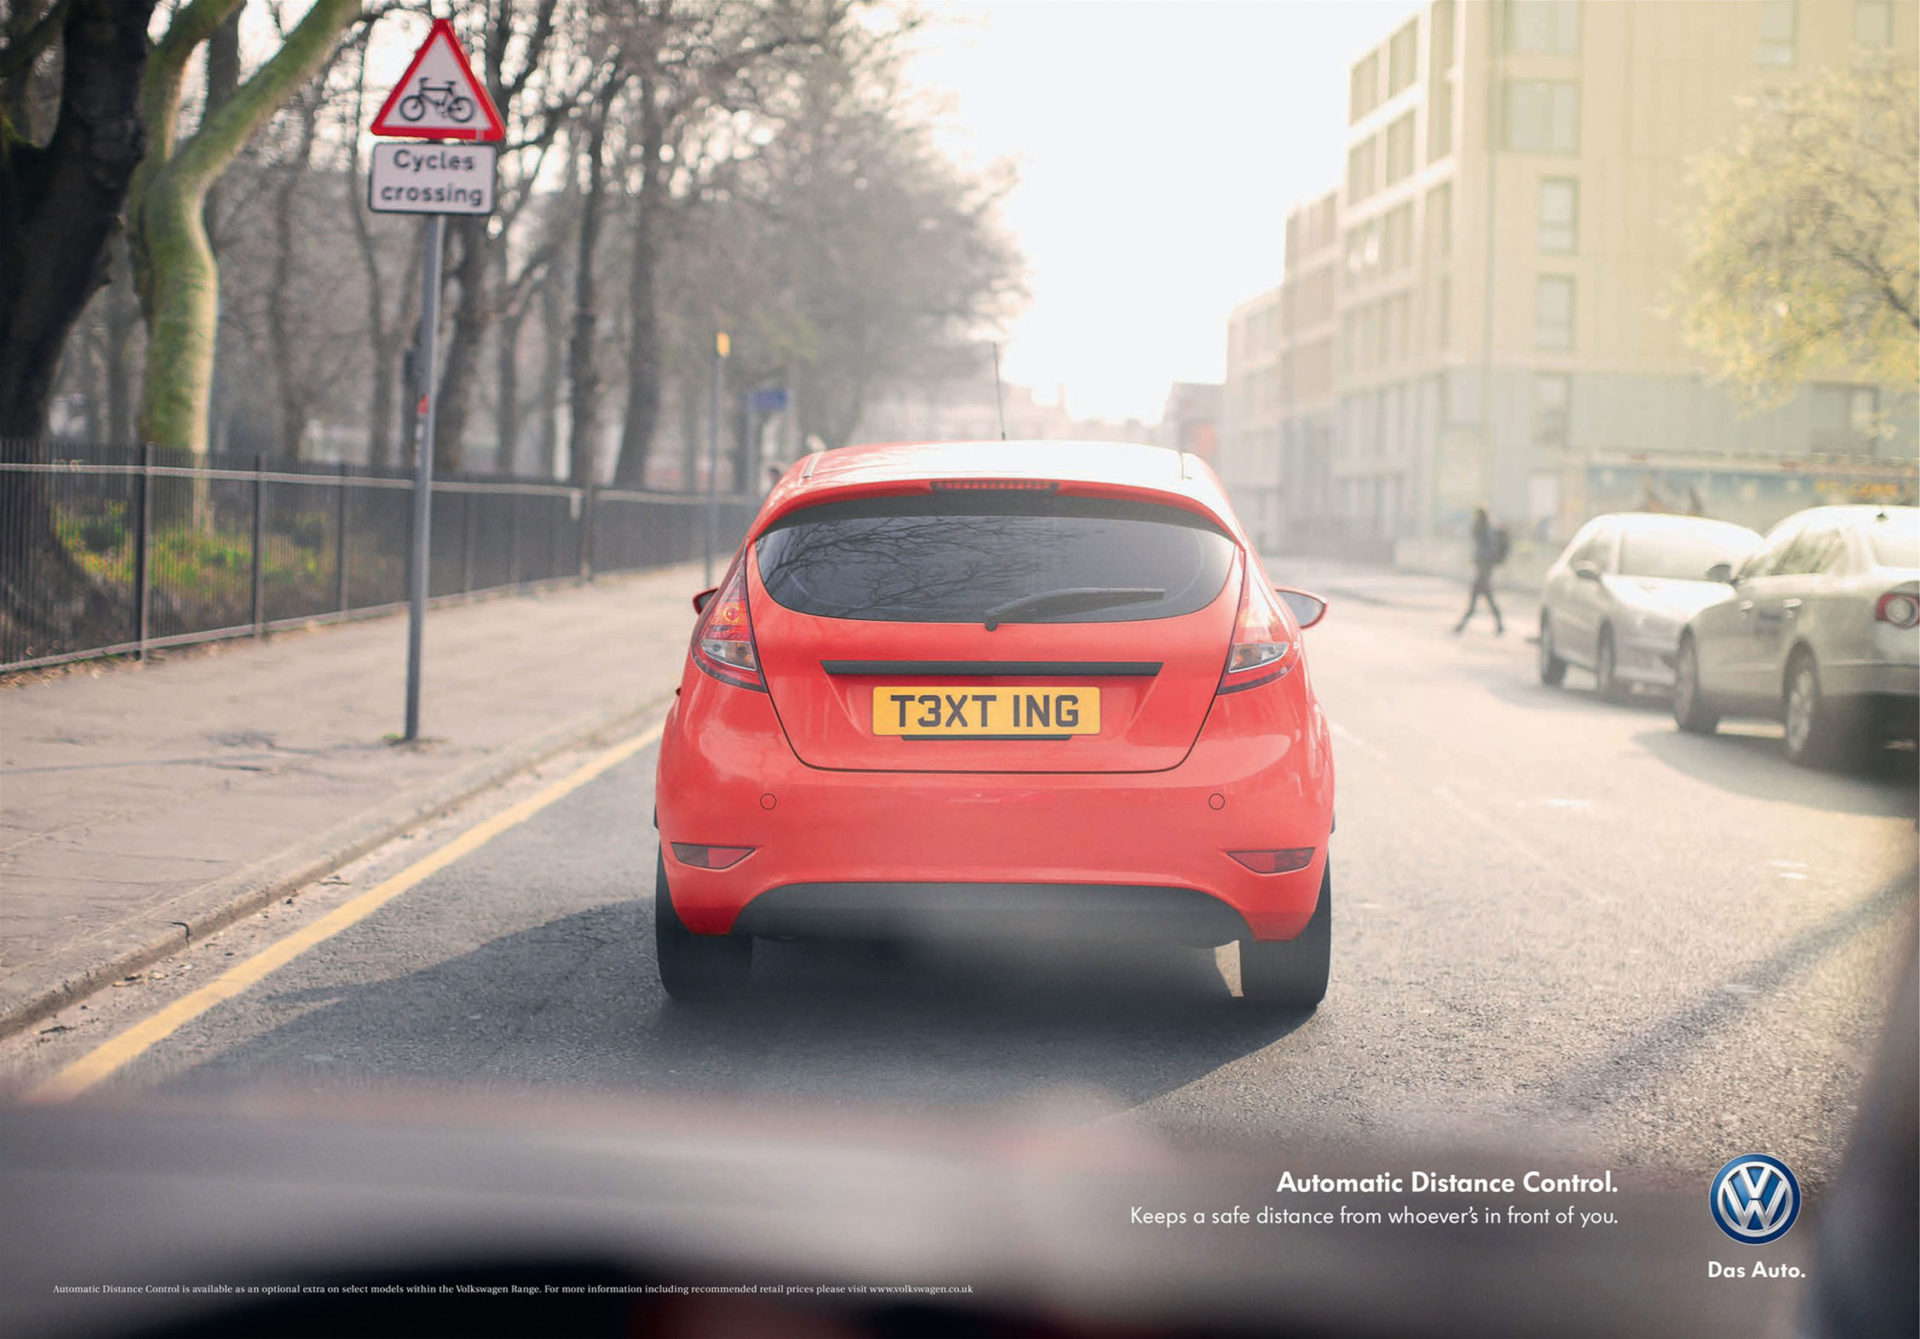 VW – red Volkswagen automatic distance control campaign Adam & Eve DDB – Shaw & Shaw Photography – Shaw and Shaw advertising photographers